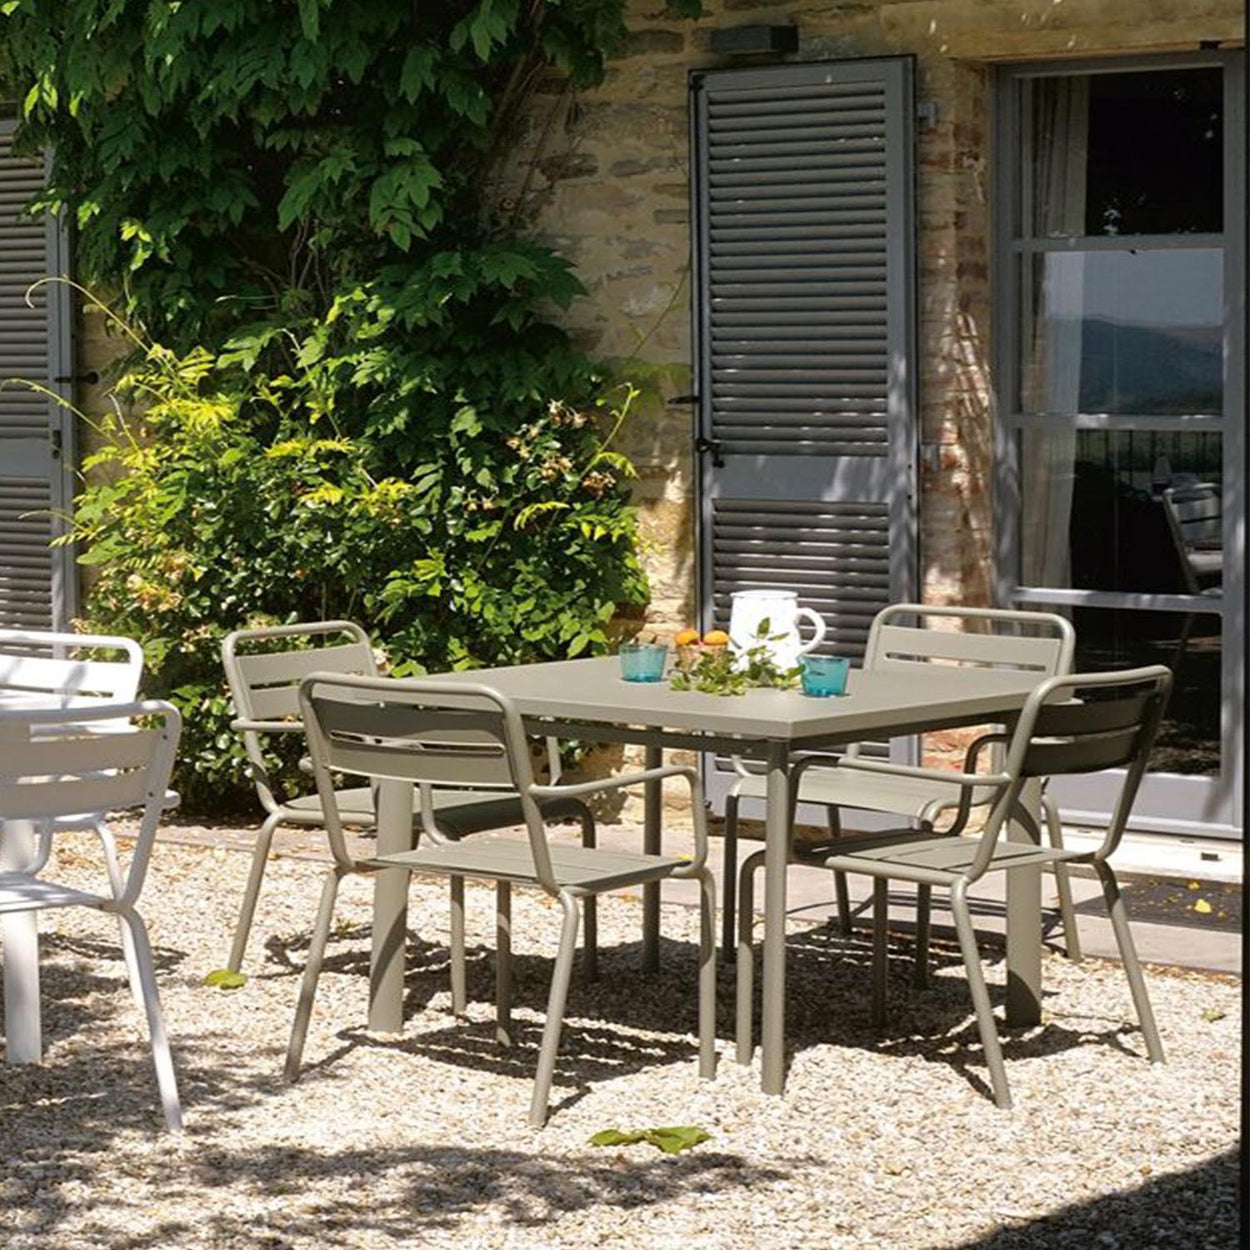 EMU STAR 4 Seater Square Garden Dining Set